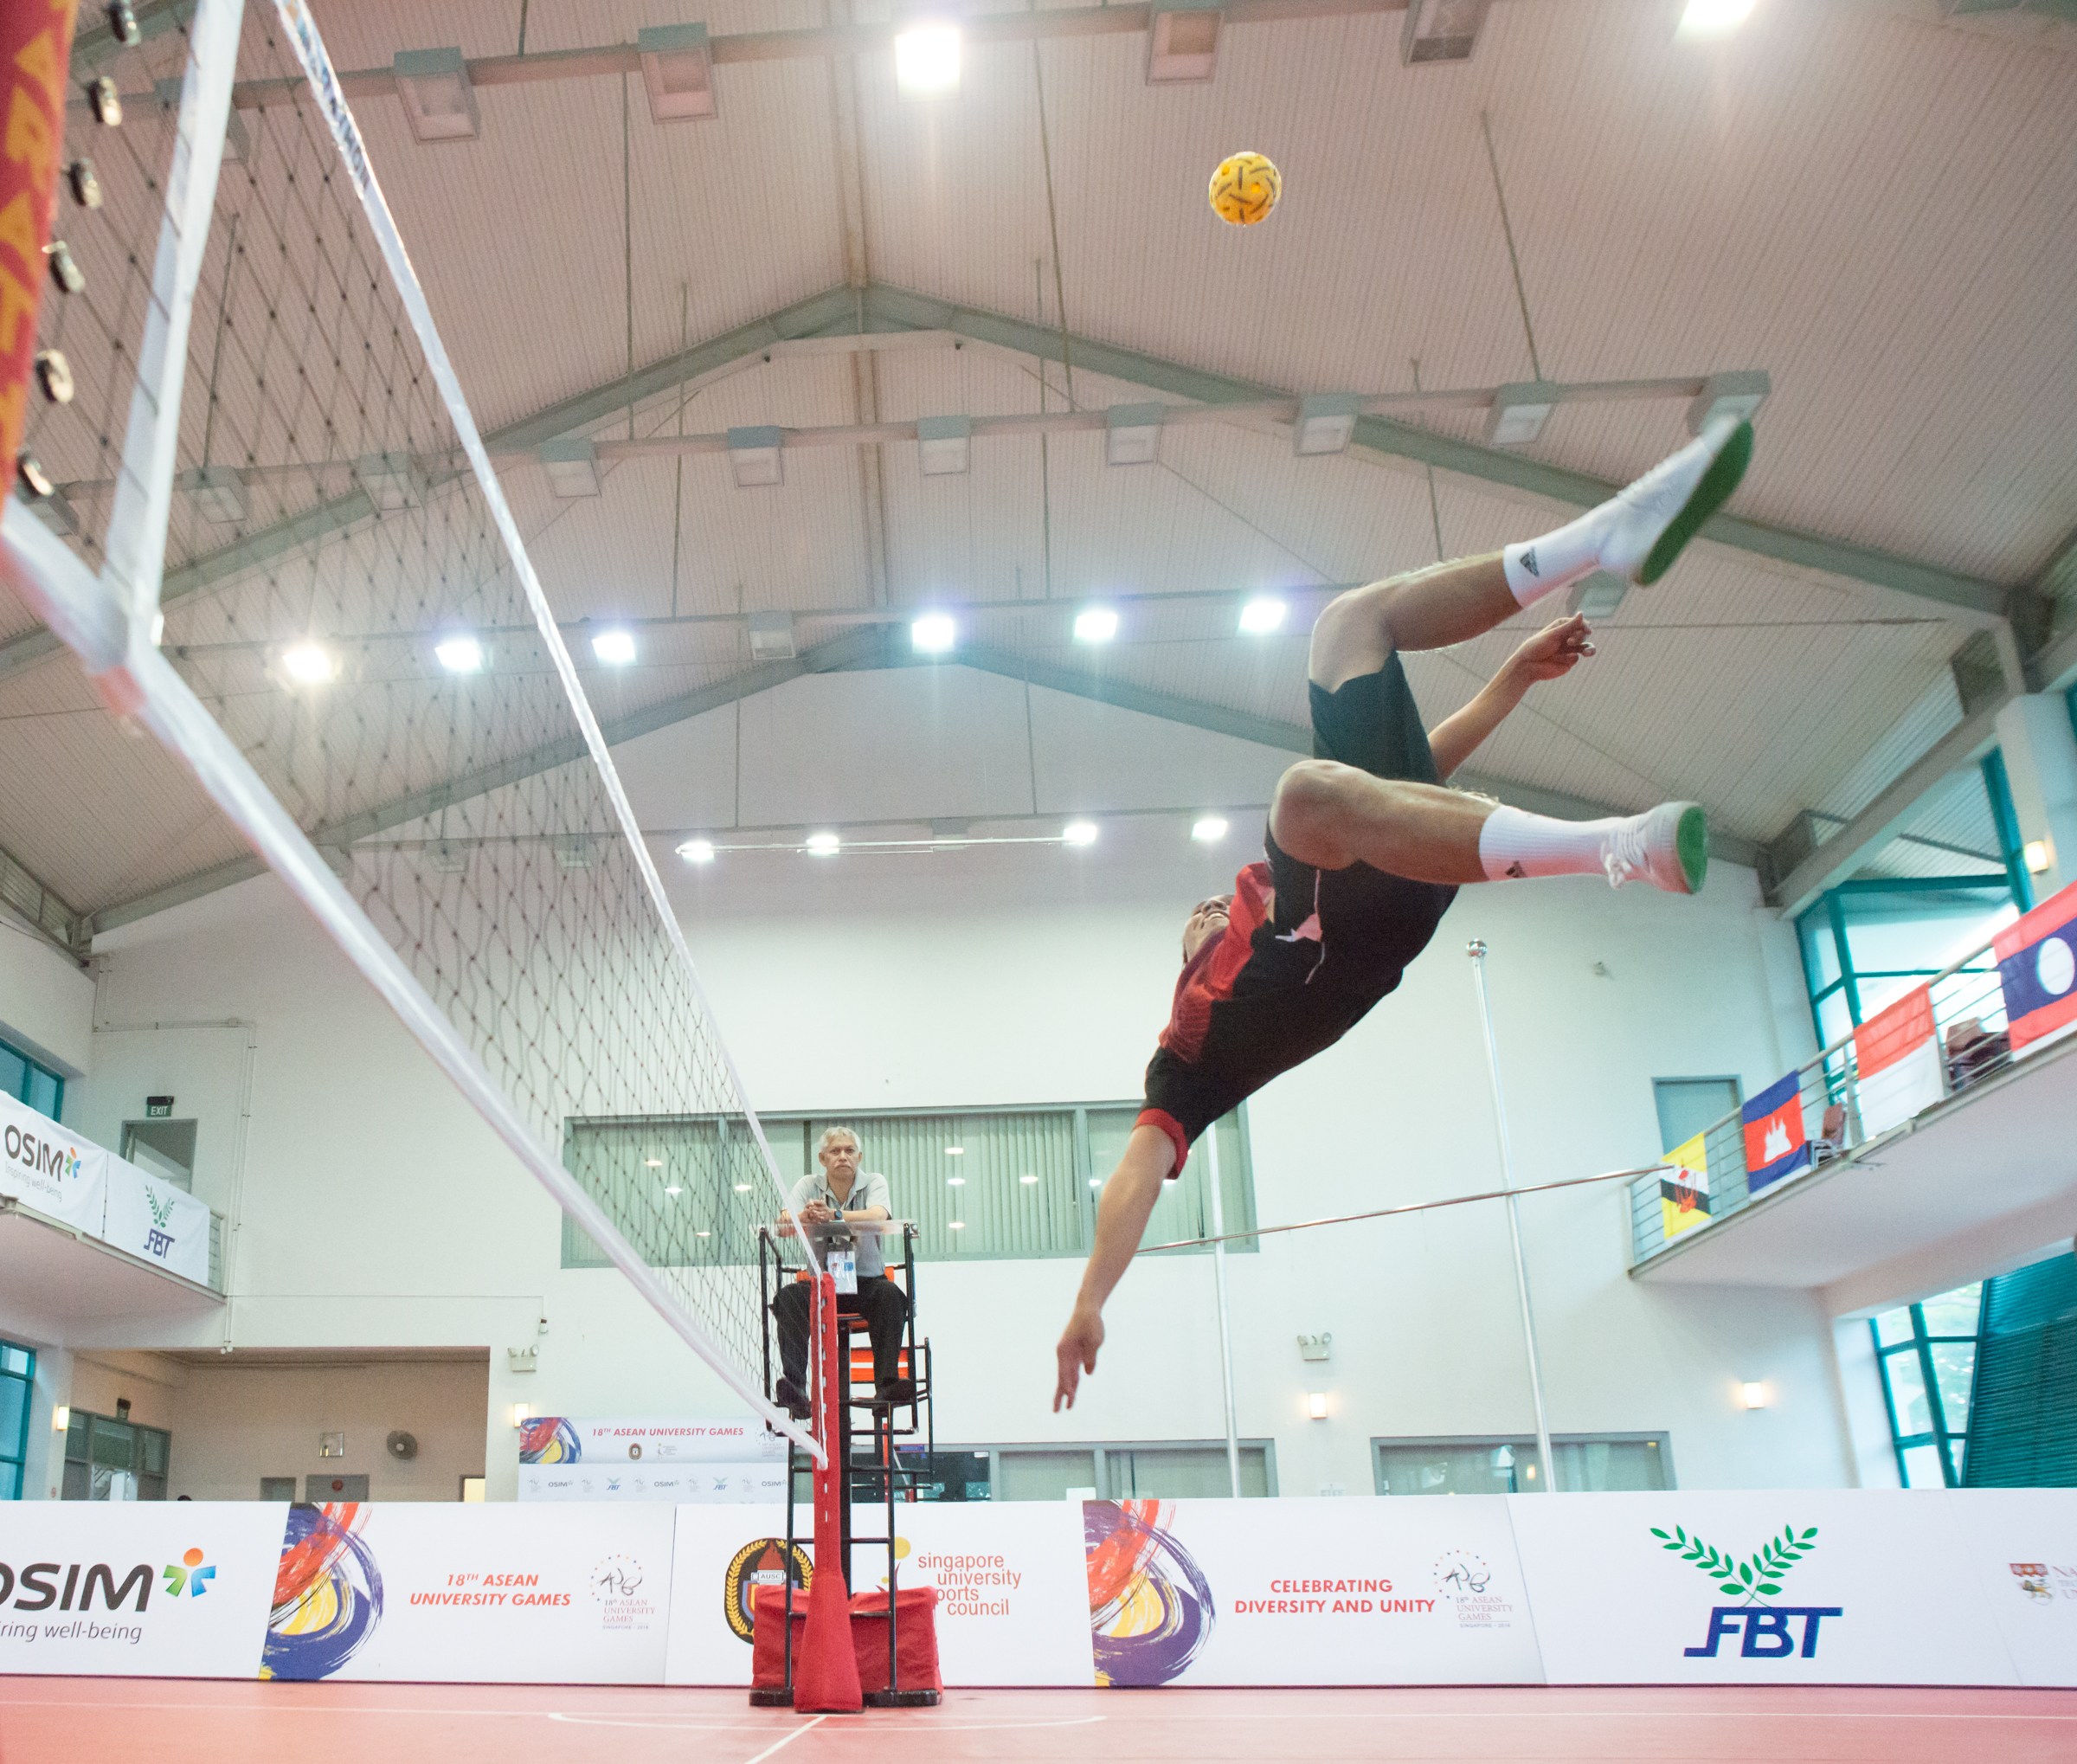 A Malaysian player prepares to kick the ball during the sepak takraw competition of the ASEAN University Games at the Bedok Sports Hall.